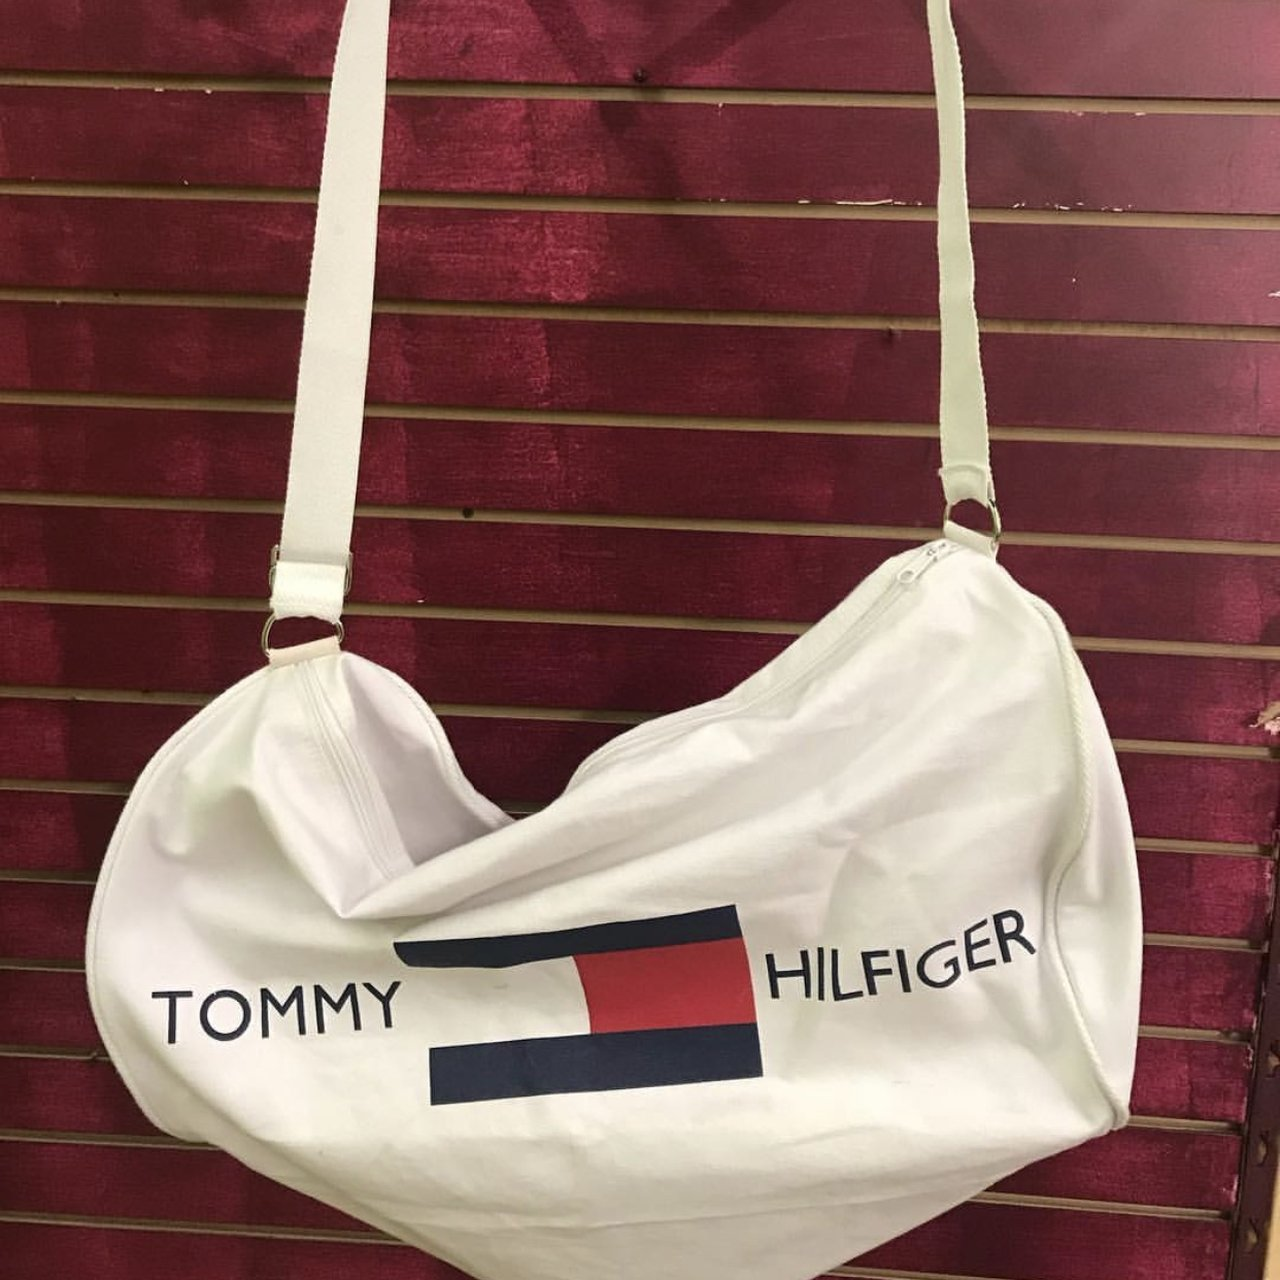 Vintage 1990s Tommy Hilfiger mini gym bag - Depop 10e825a3e0bbf